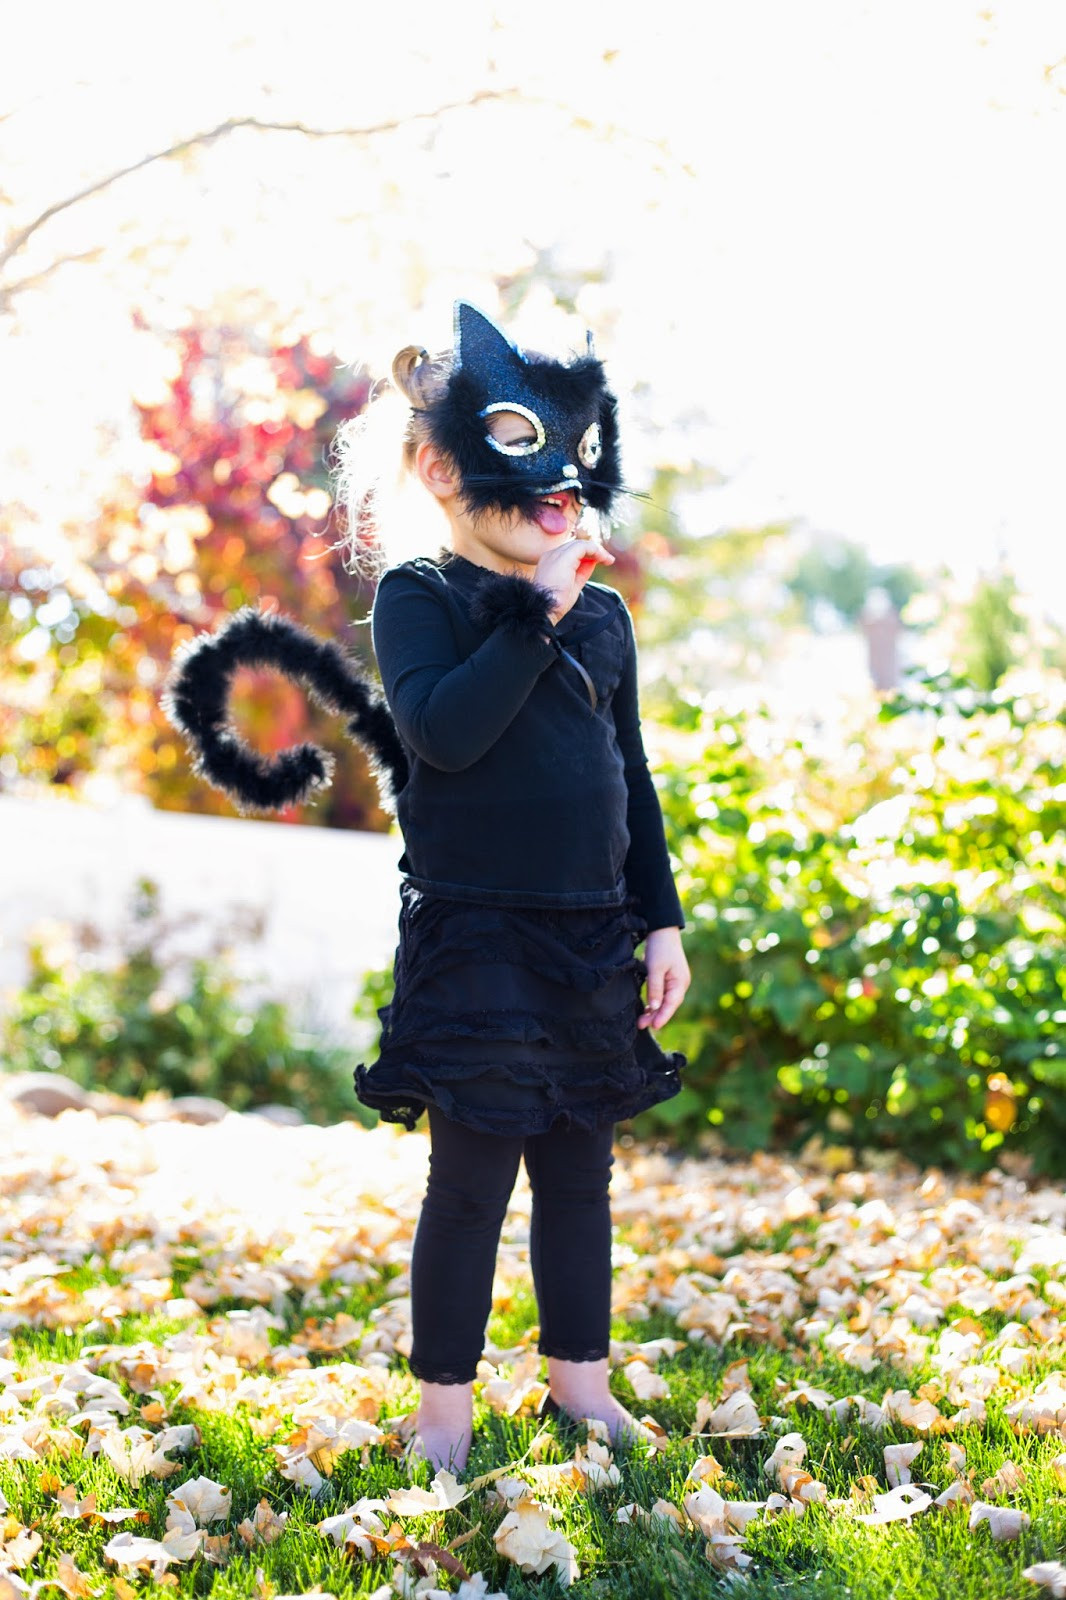 Best ideas about Cat DIY Costume . Save or Pin do it yourself divas Little Girl Cat Costume for Halloween Now.